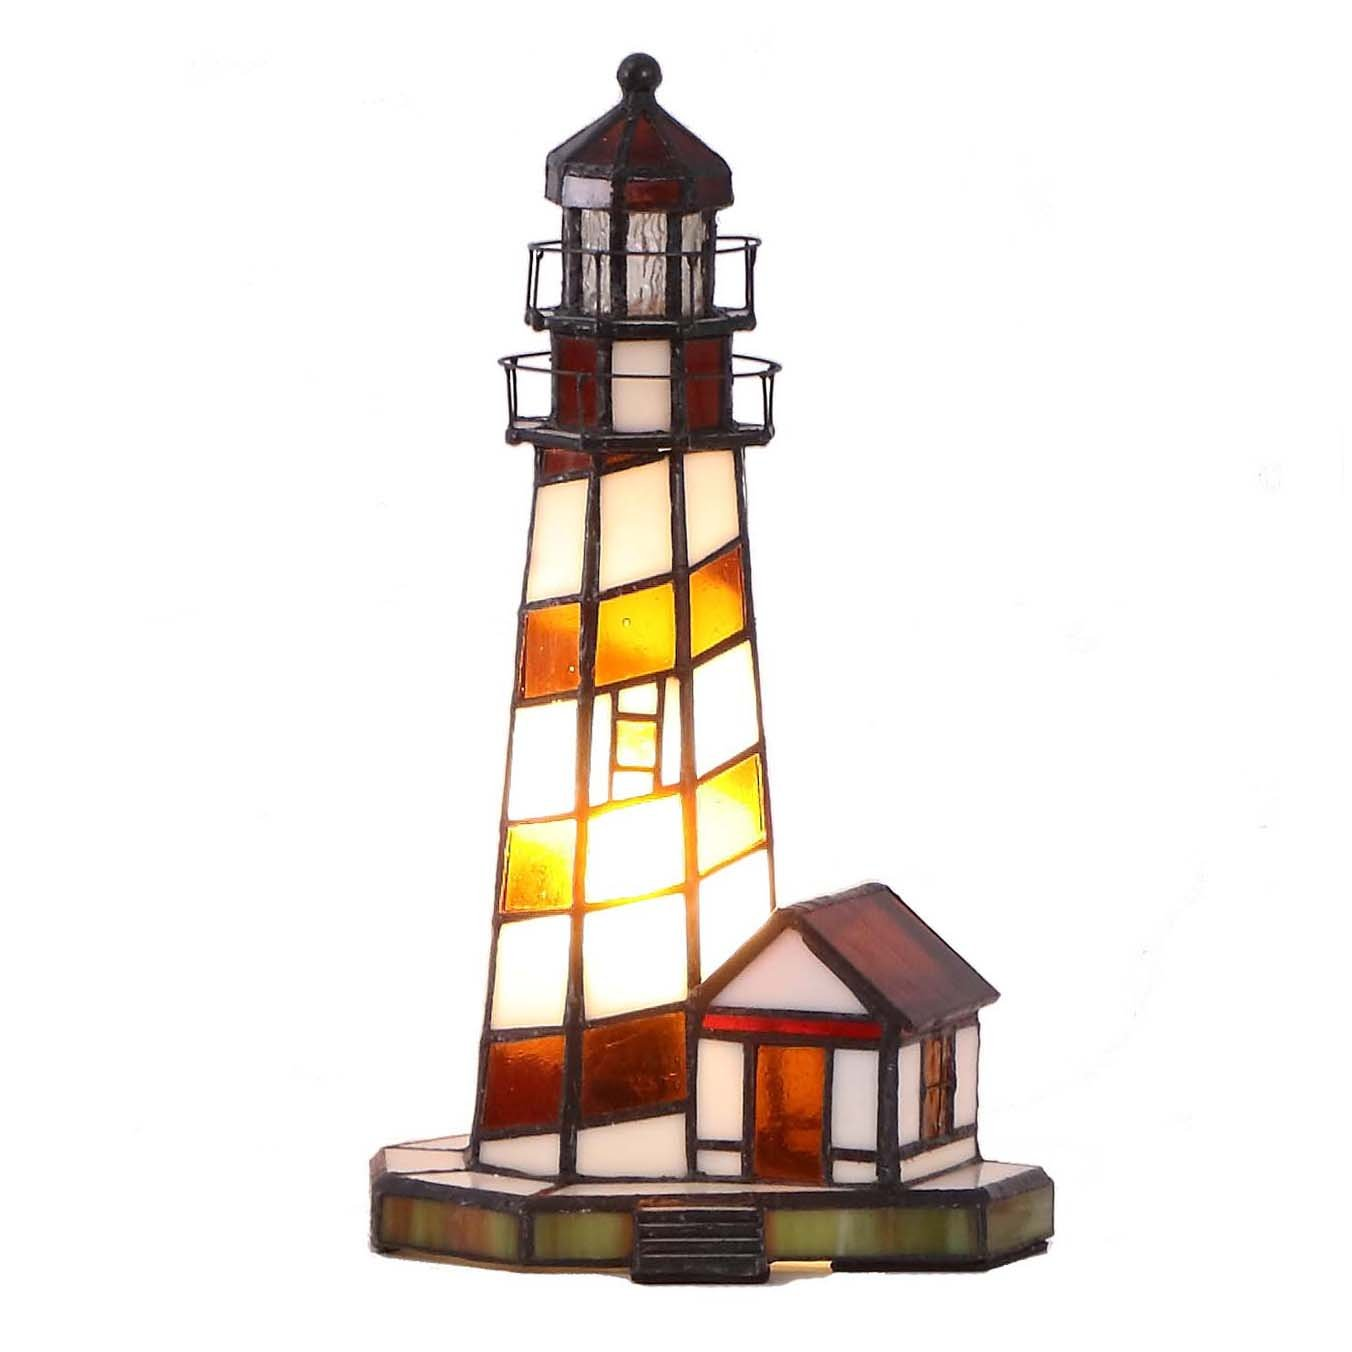 bieye inch lighthouse tiffany style stained glass accent table lamps lamp night light pottery barn black coffee pin legs metal and sofa dining set with bench mosaic kitchen patio